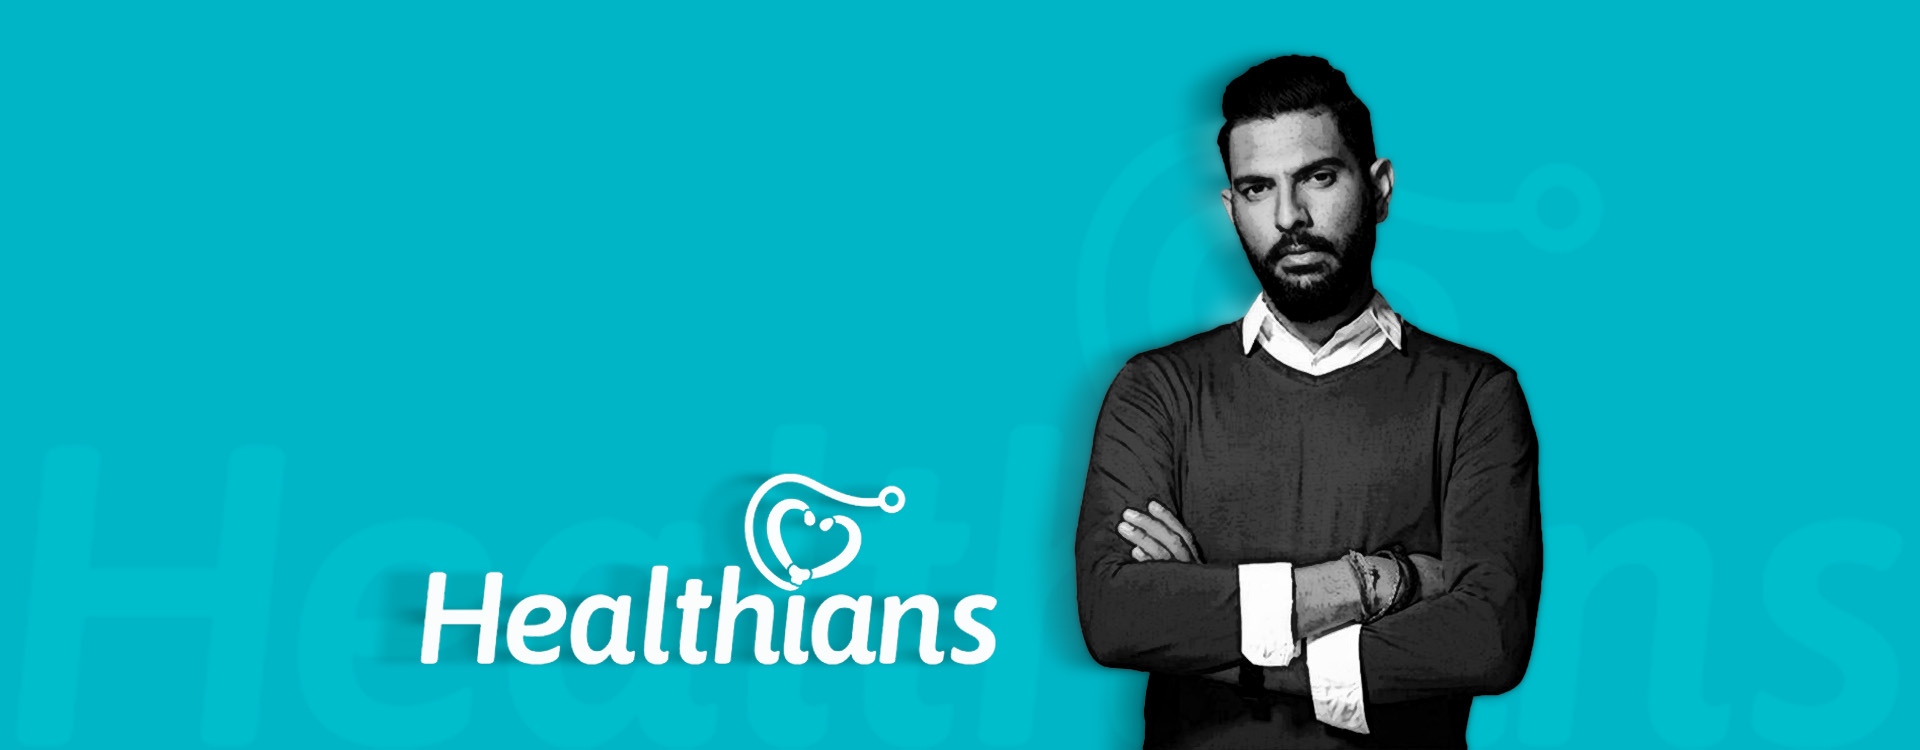 Healthians is B2C diagnostics startup which is backed by Yuvraj Singh.